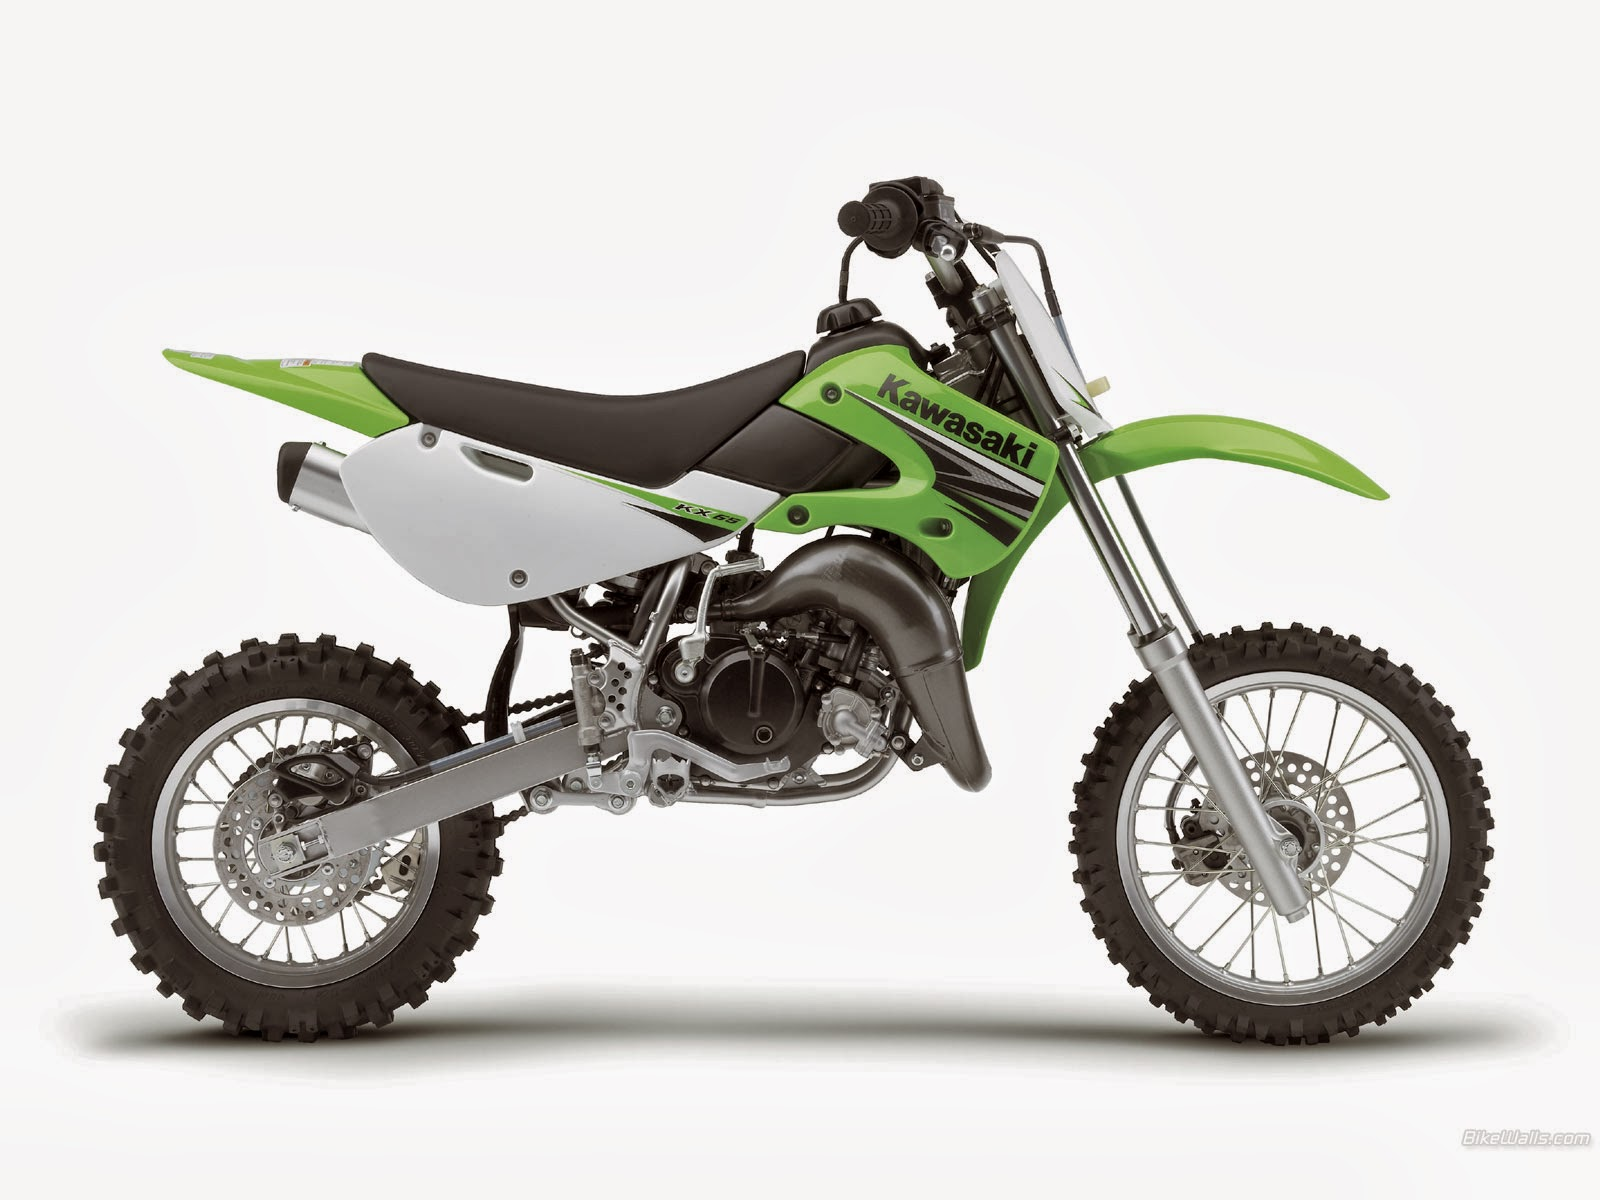 kawasaki kx 65 kawasaki motor. Black Bedroom Furniture Sets. Home Design Ideas